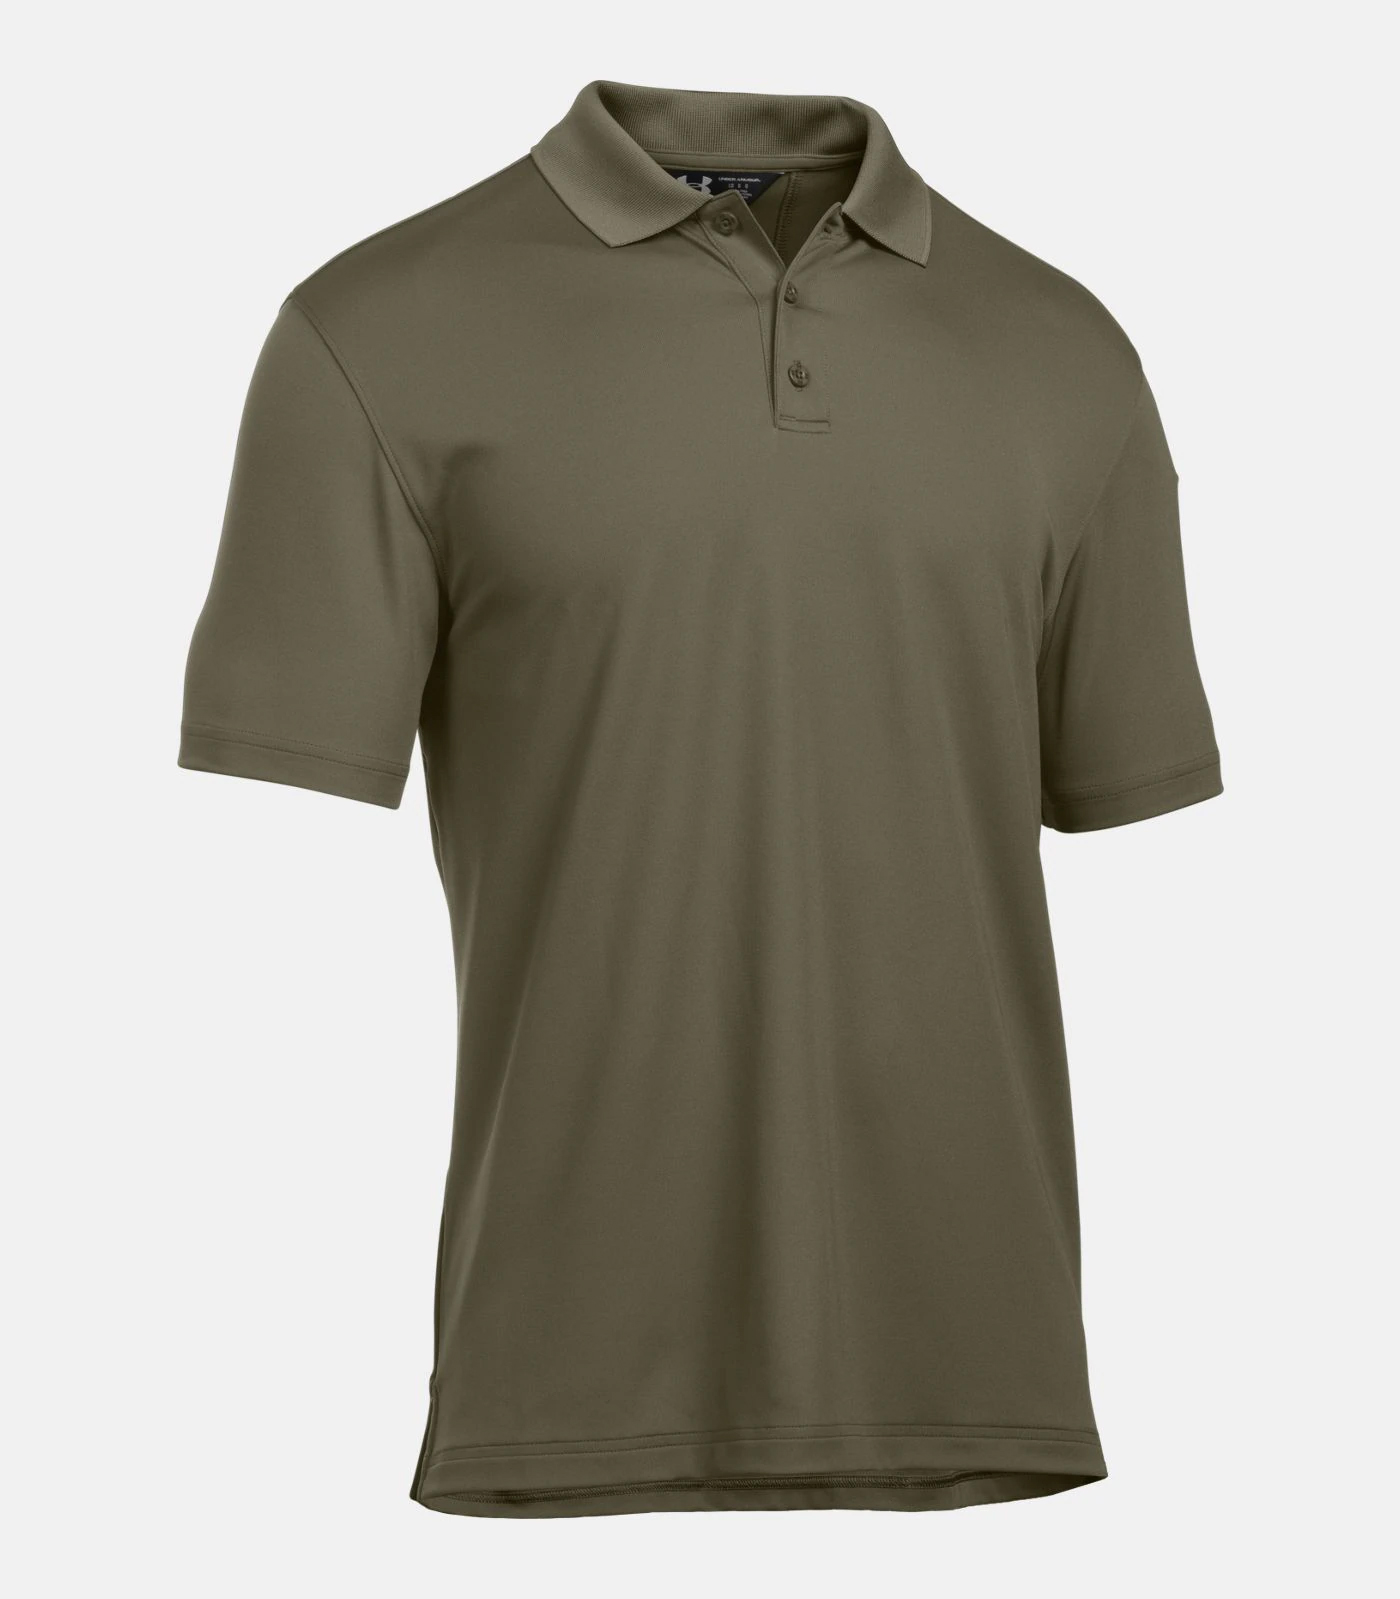 MENS_POLO_TacPerformance-SS_UAR1279759390_02